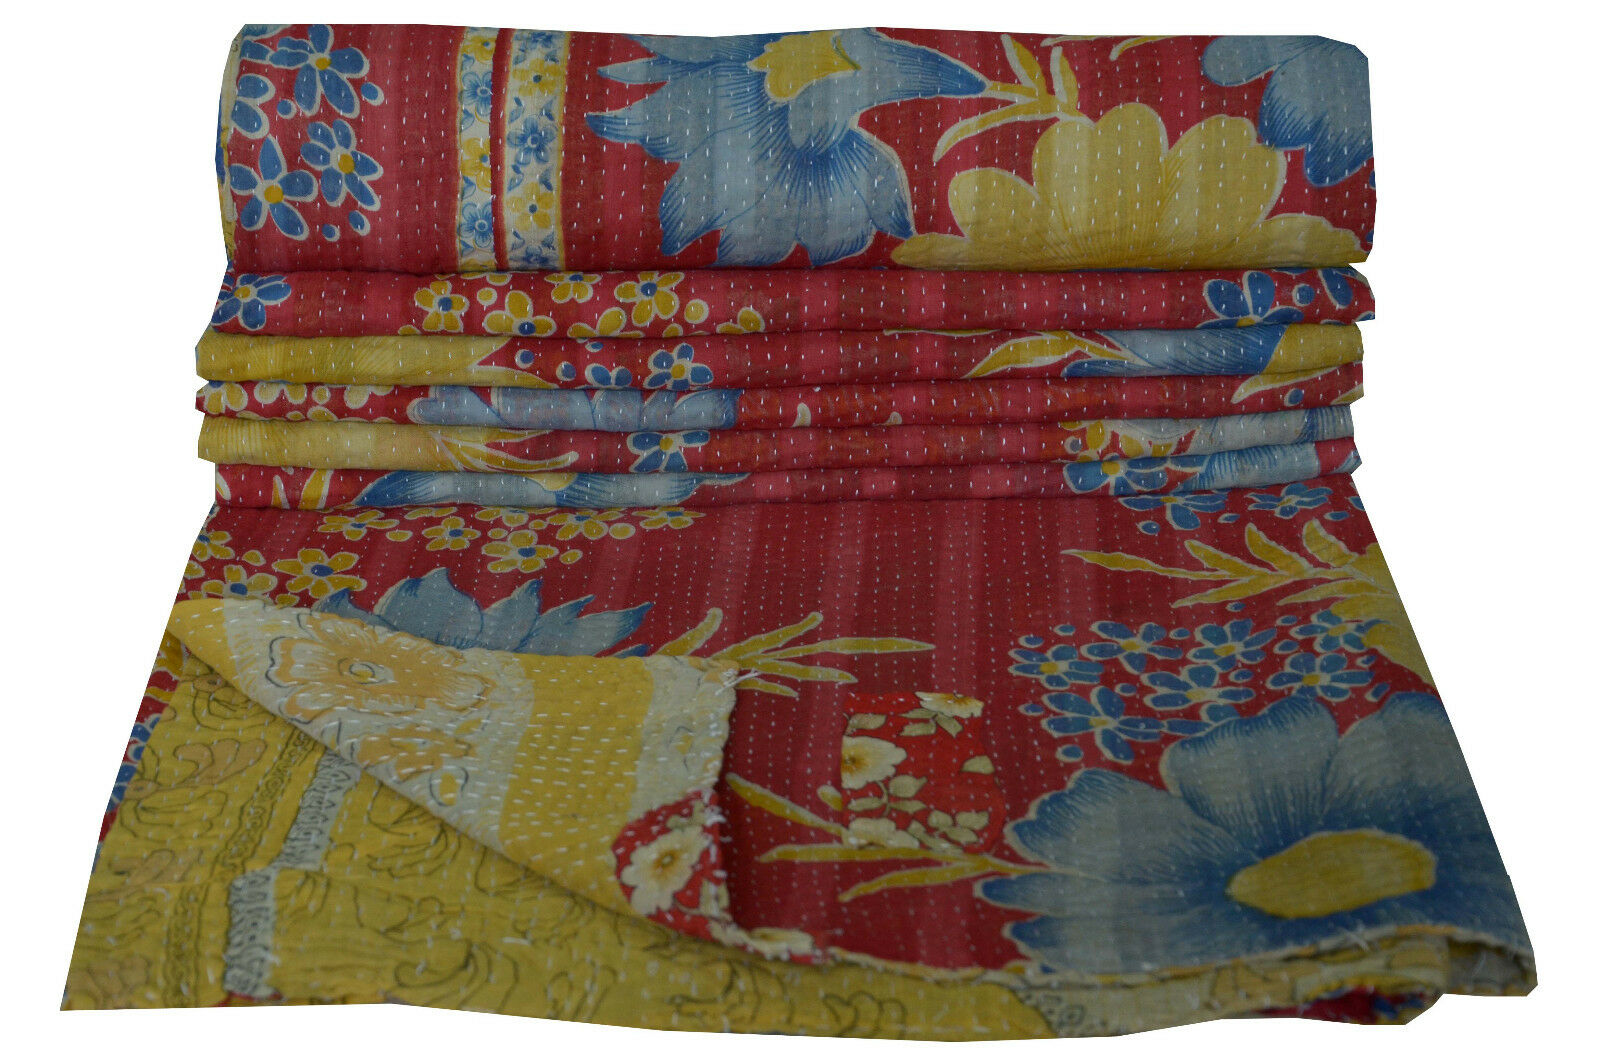 Indian Cotton Gudri Vintage Kantha Quilt Twin Throw Floral Bedspread Home Decor